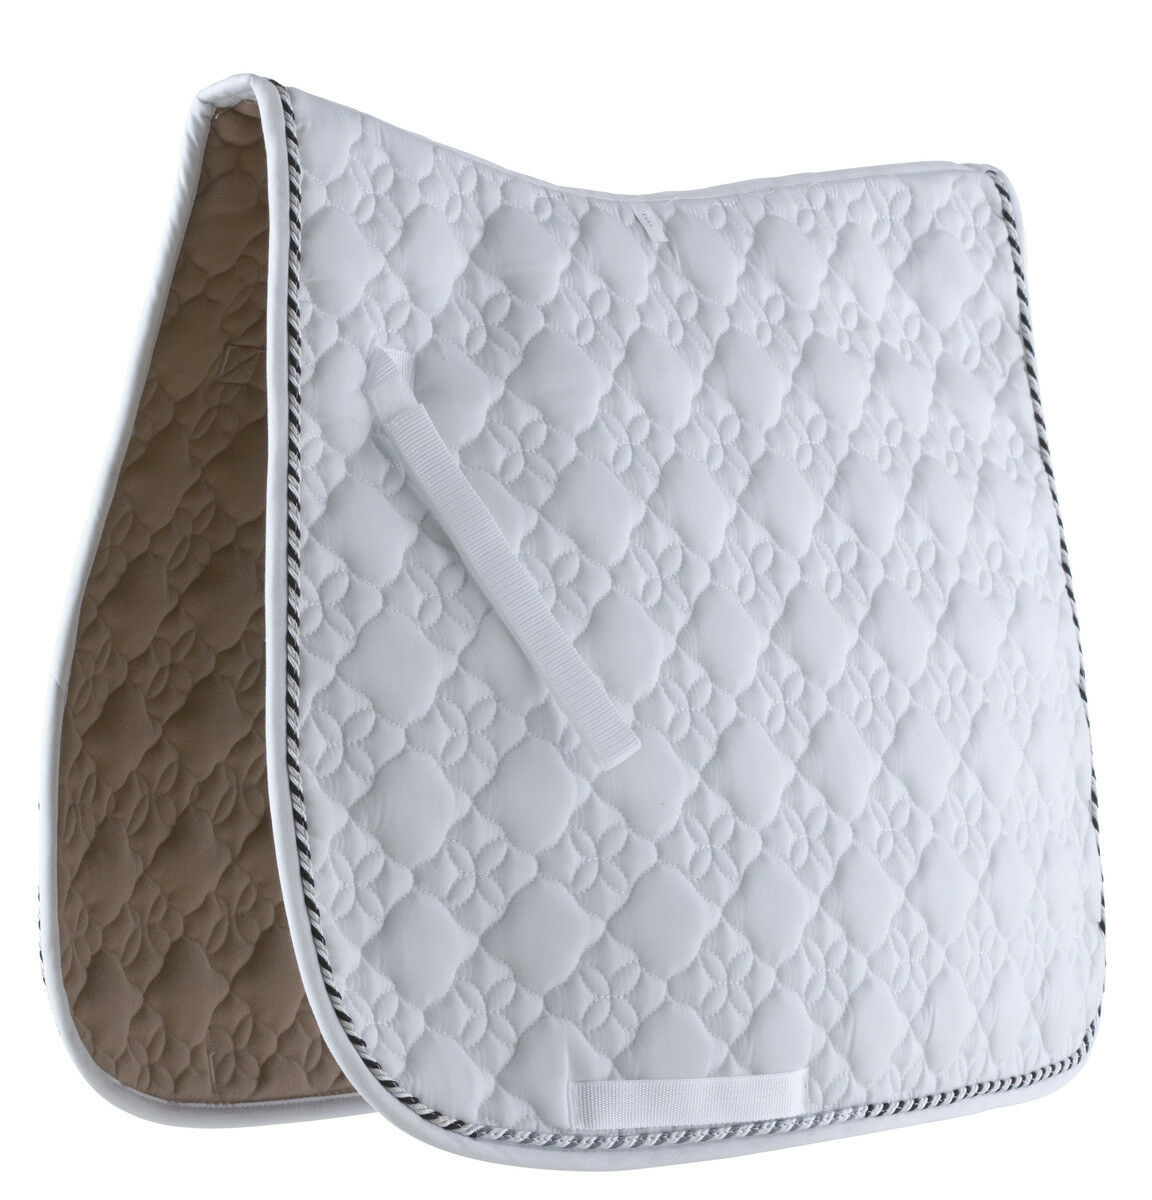 Roma Ecole Flower Diamond Quilt Dressage Saddle Pad Girth Guard 40  x 23